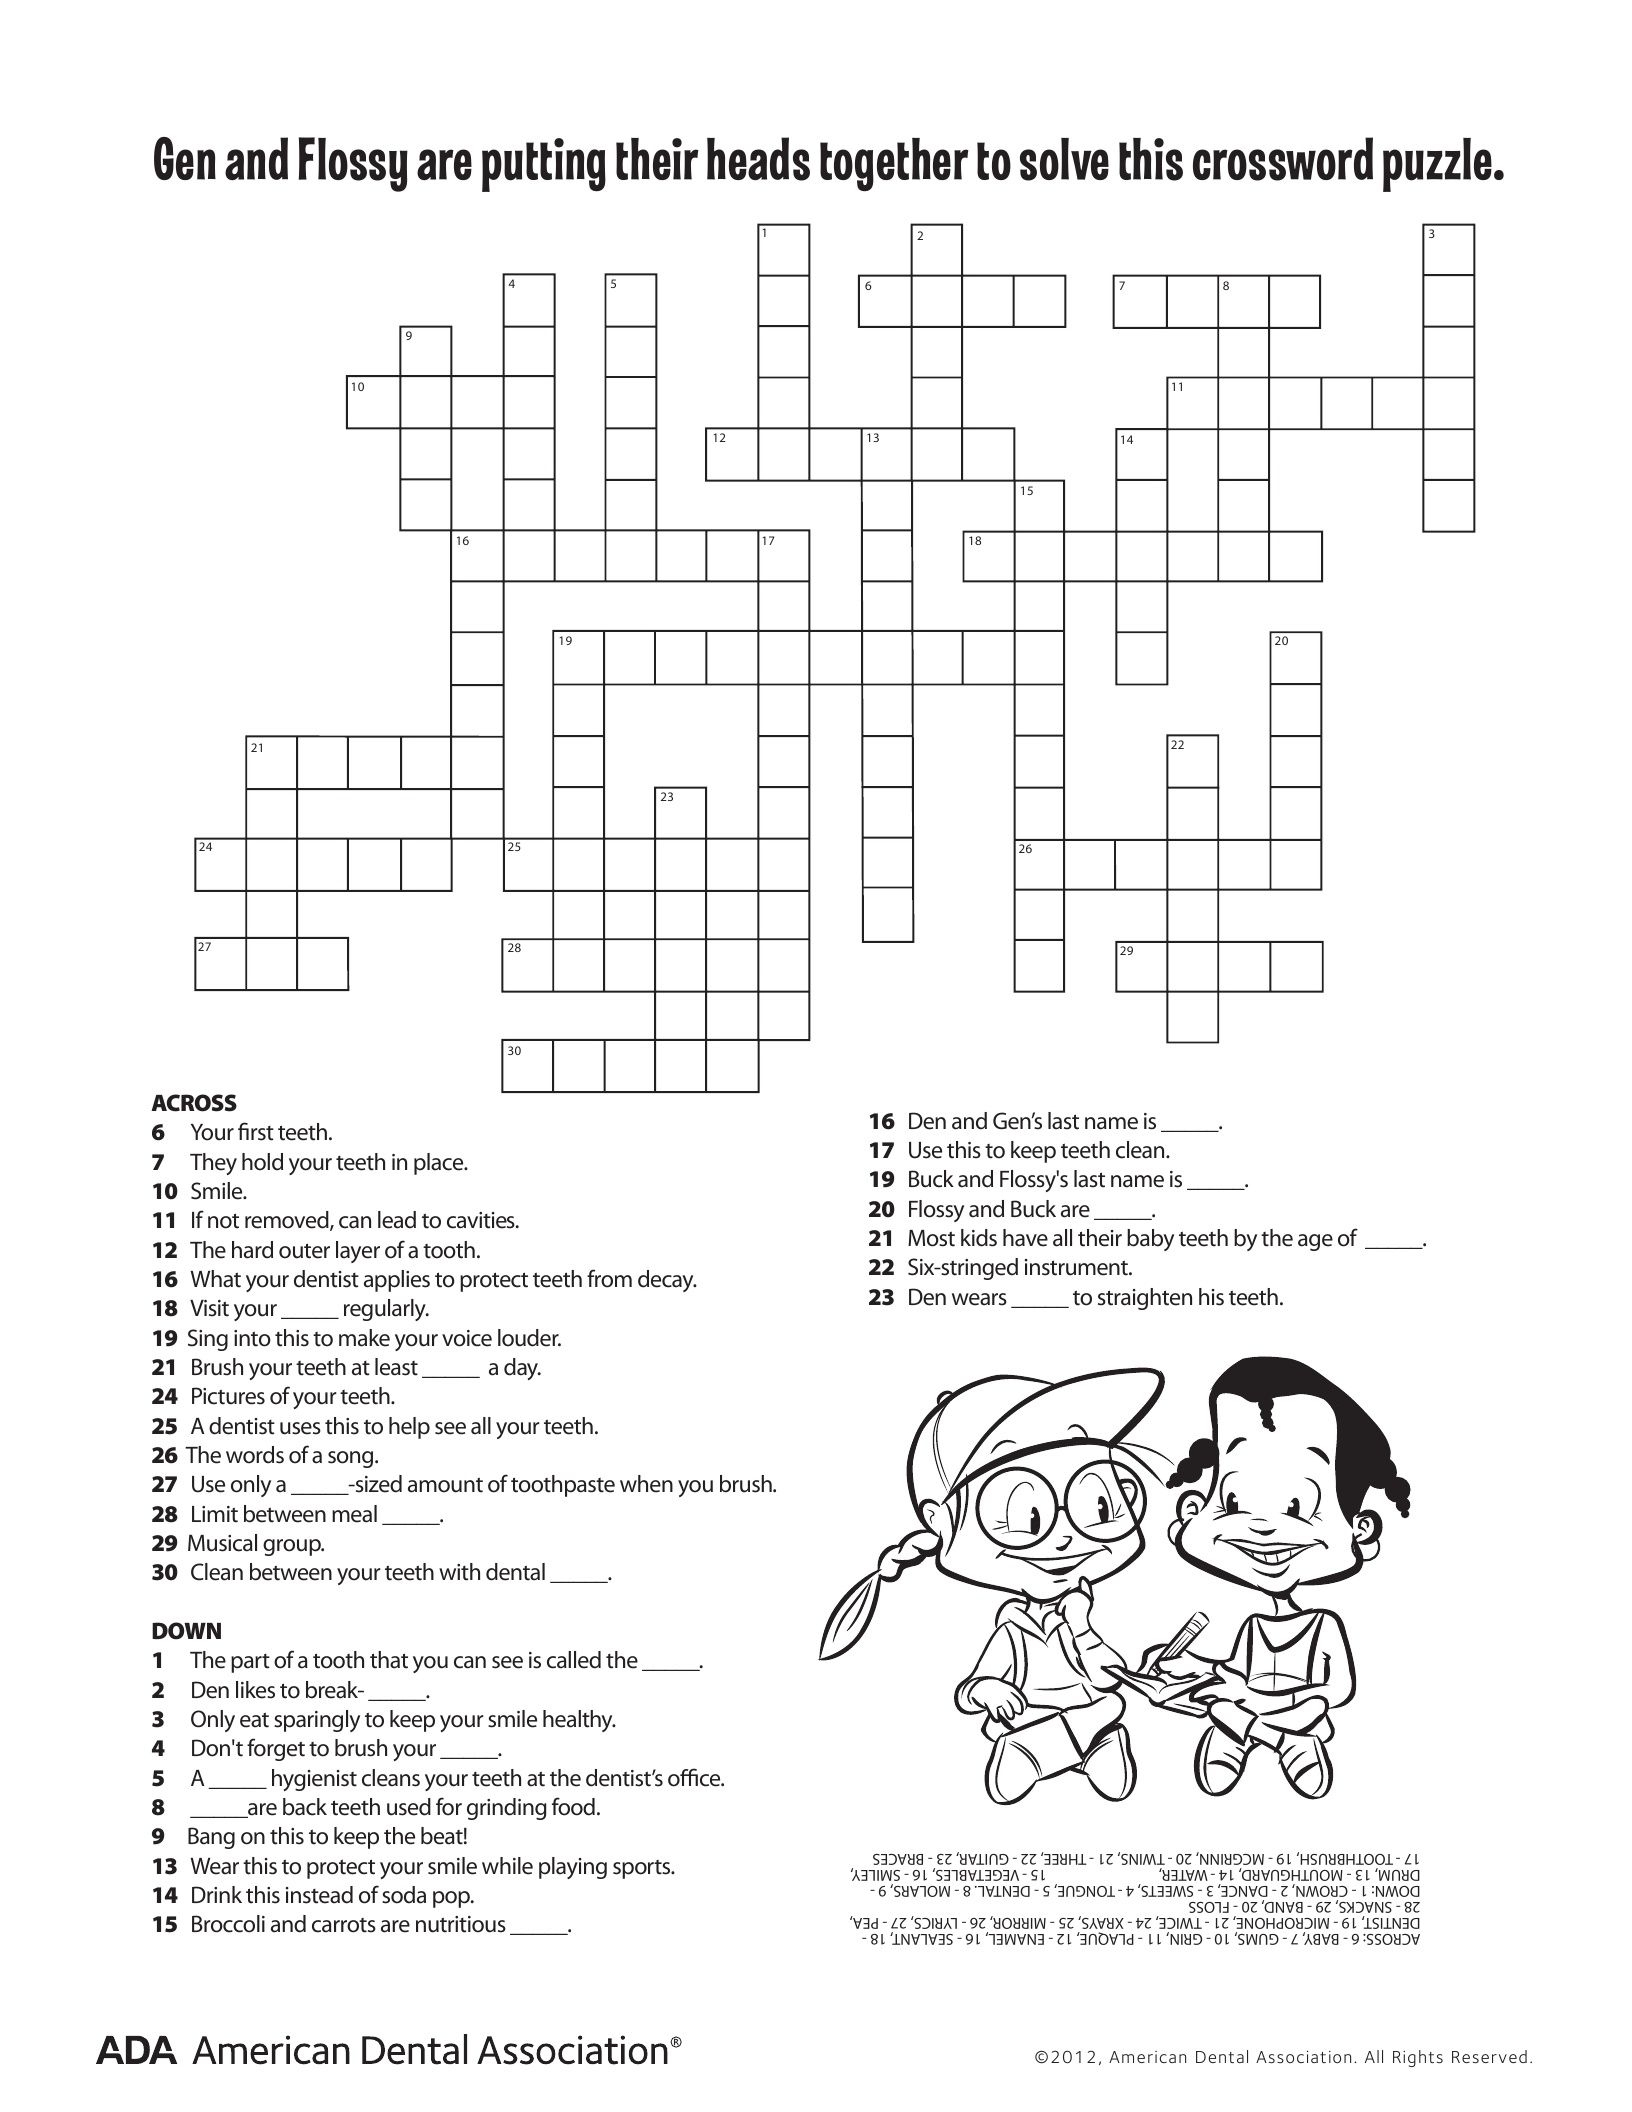 photo relating to Dental Health Printable Activities named 11 Dental Exercise Pursuits Puzzle Enjoyable (Printable) Dental